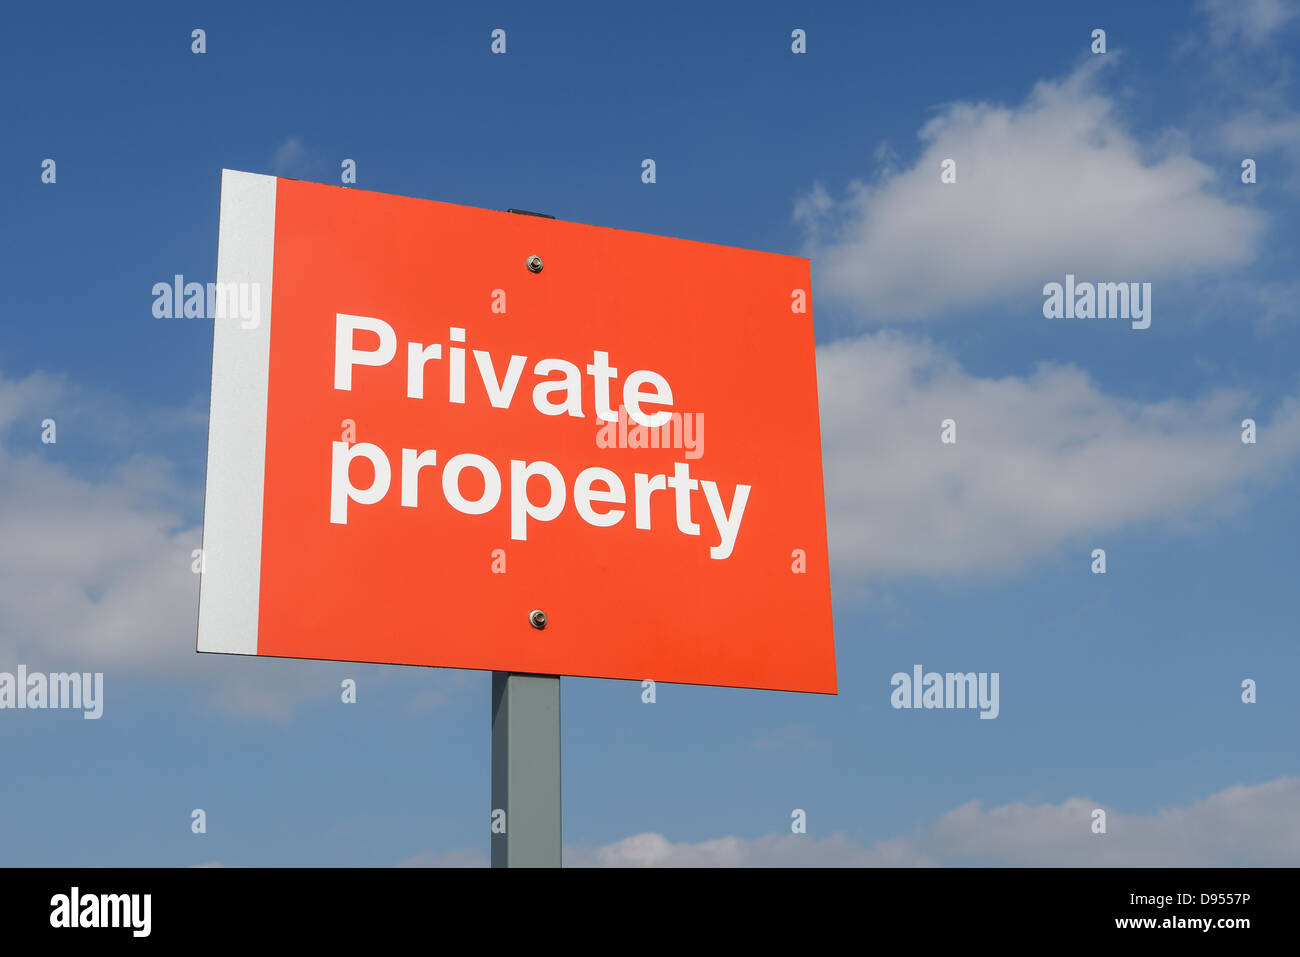 Private property sign - Stock Image